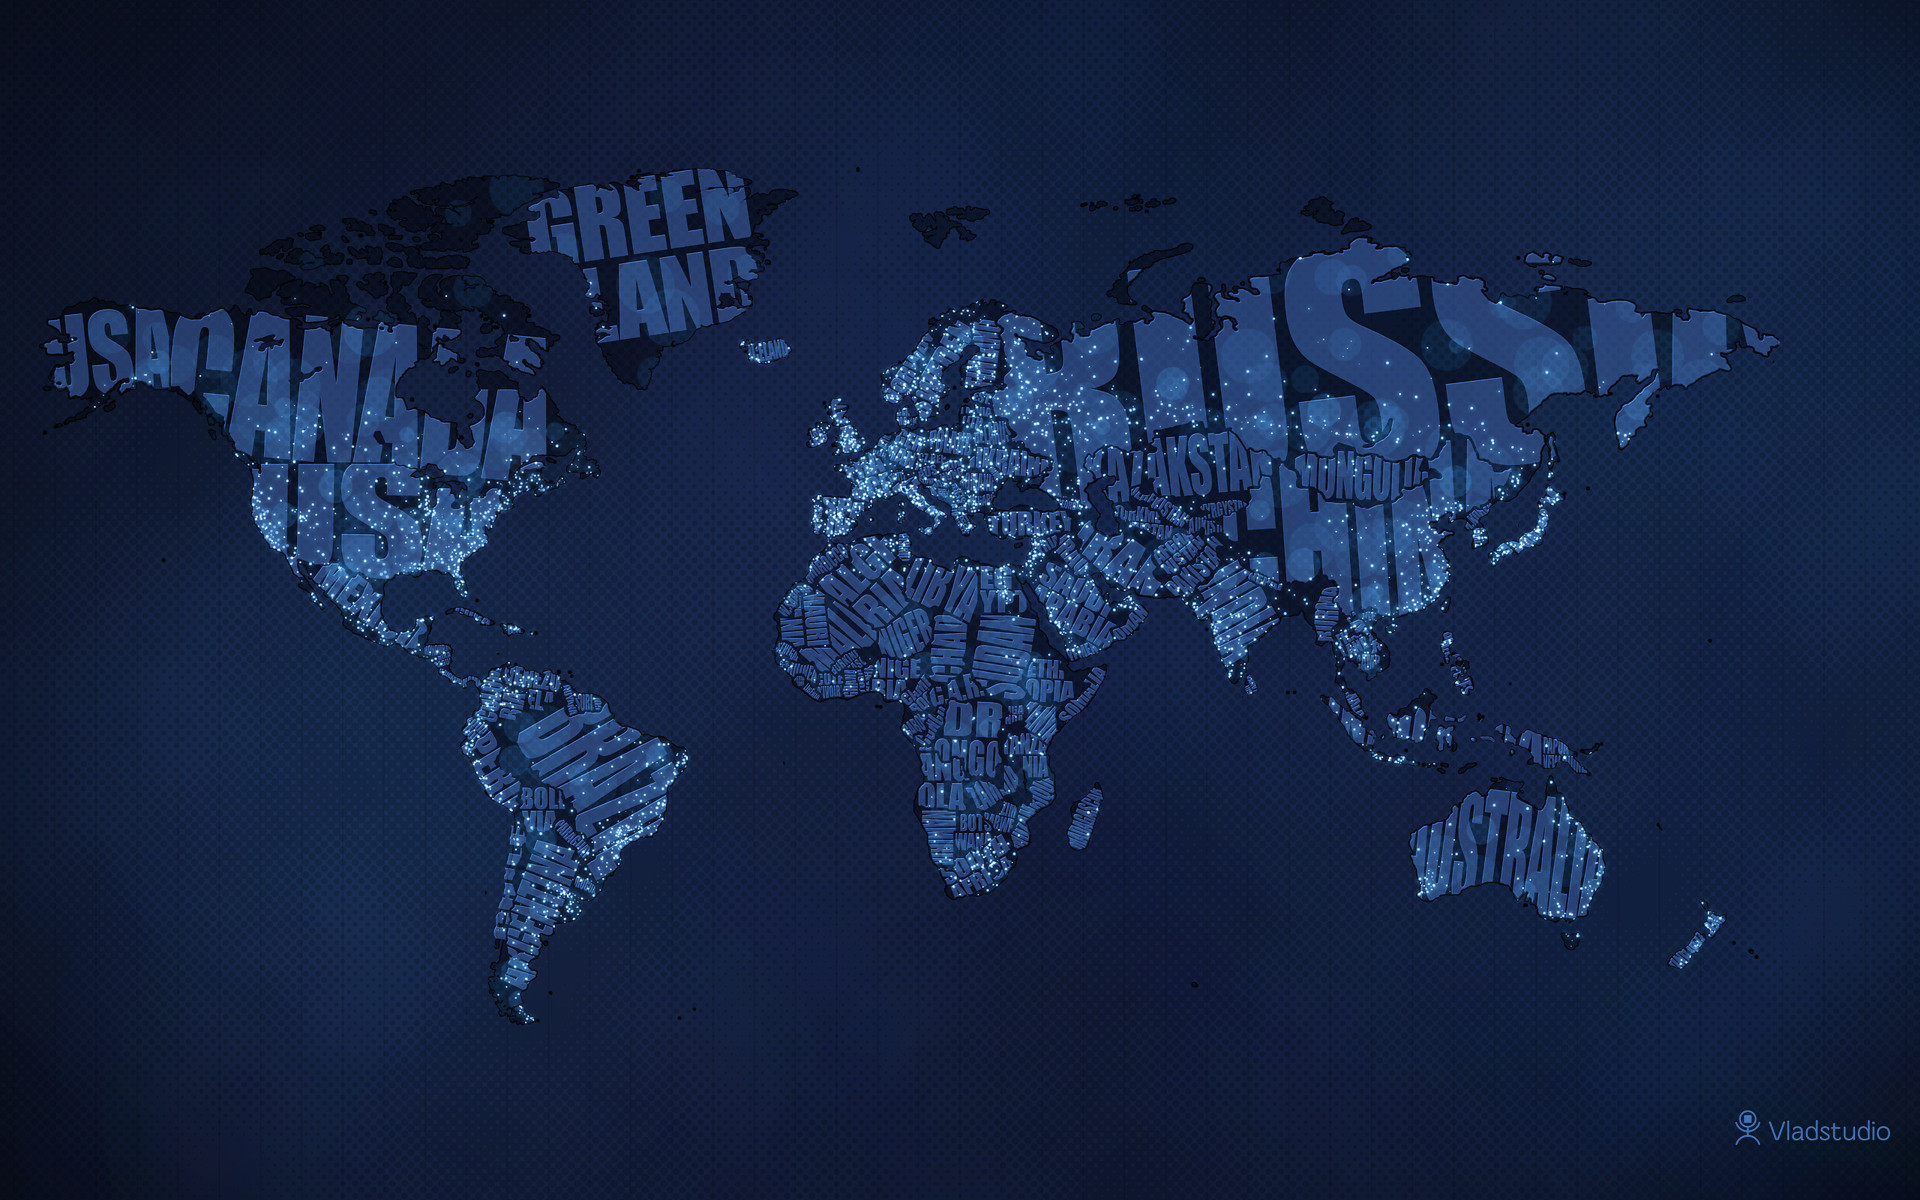 Wallpaper of world map 62 images 1920x1200 typographic world map night hd wallpaper theme bin gumiabroncs Gallery